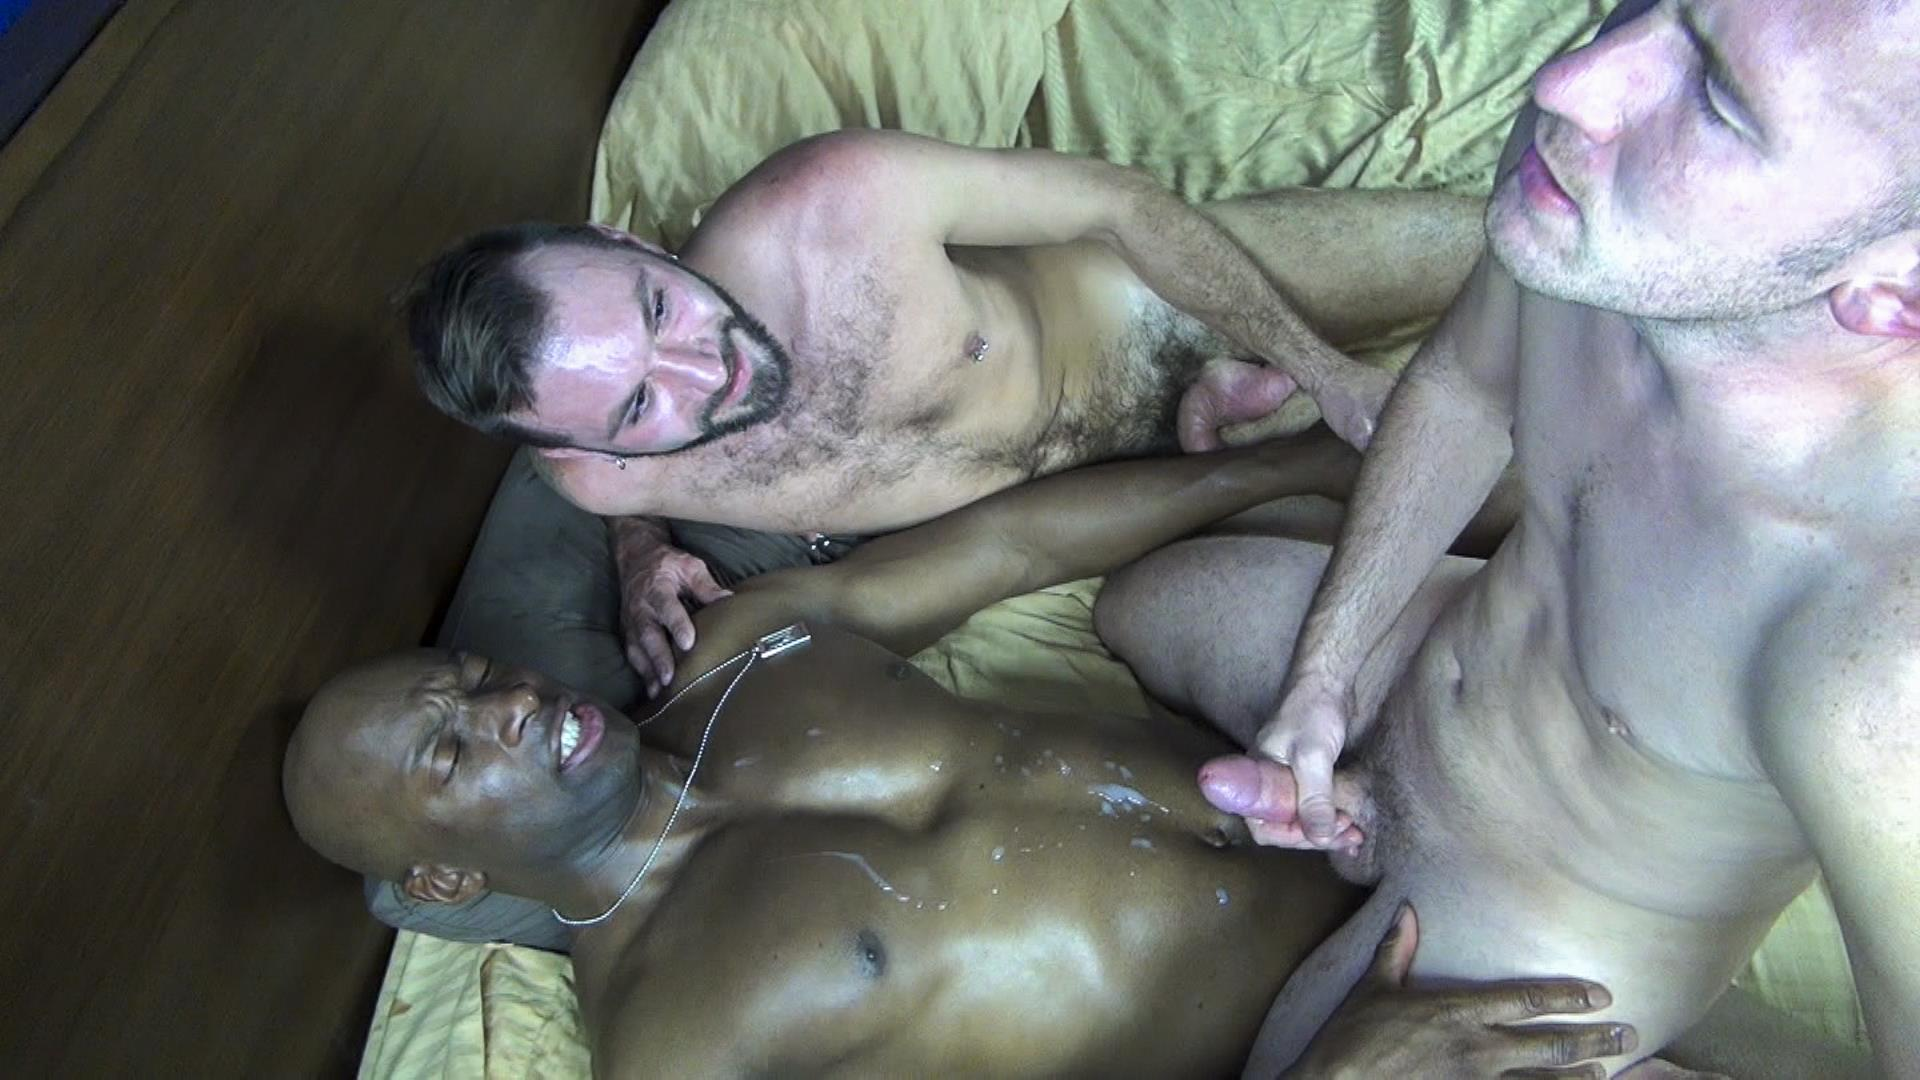 Uncut cock sex club scene two